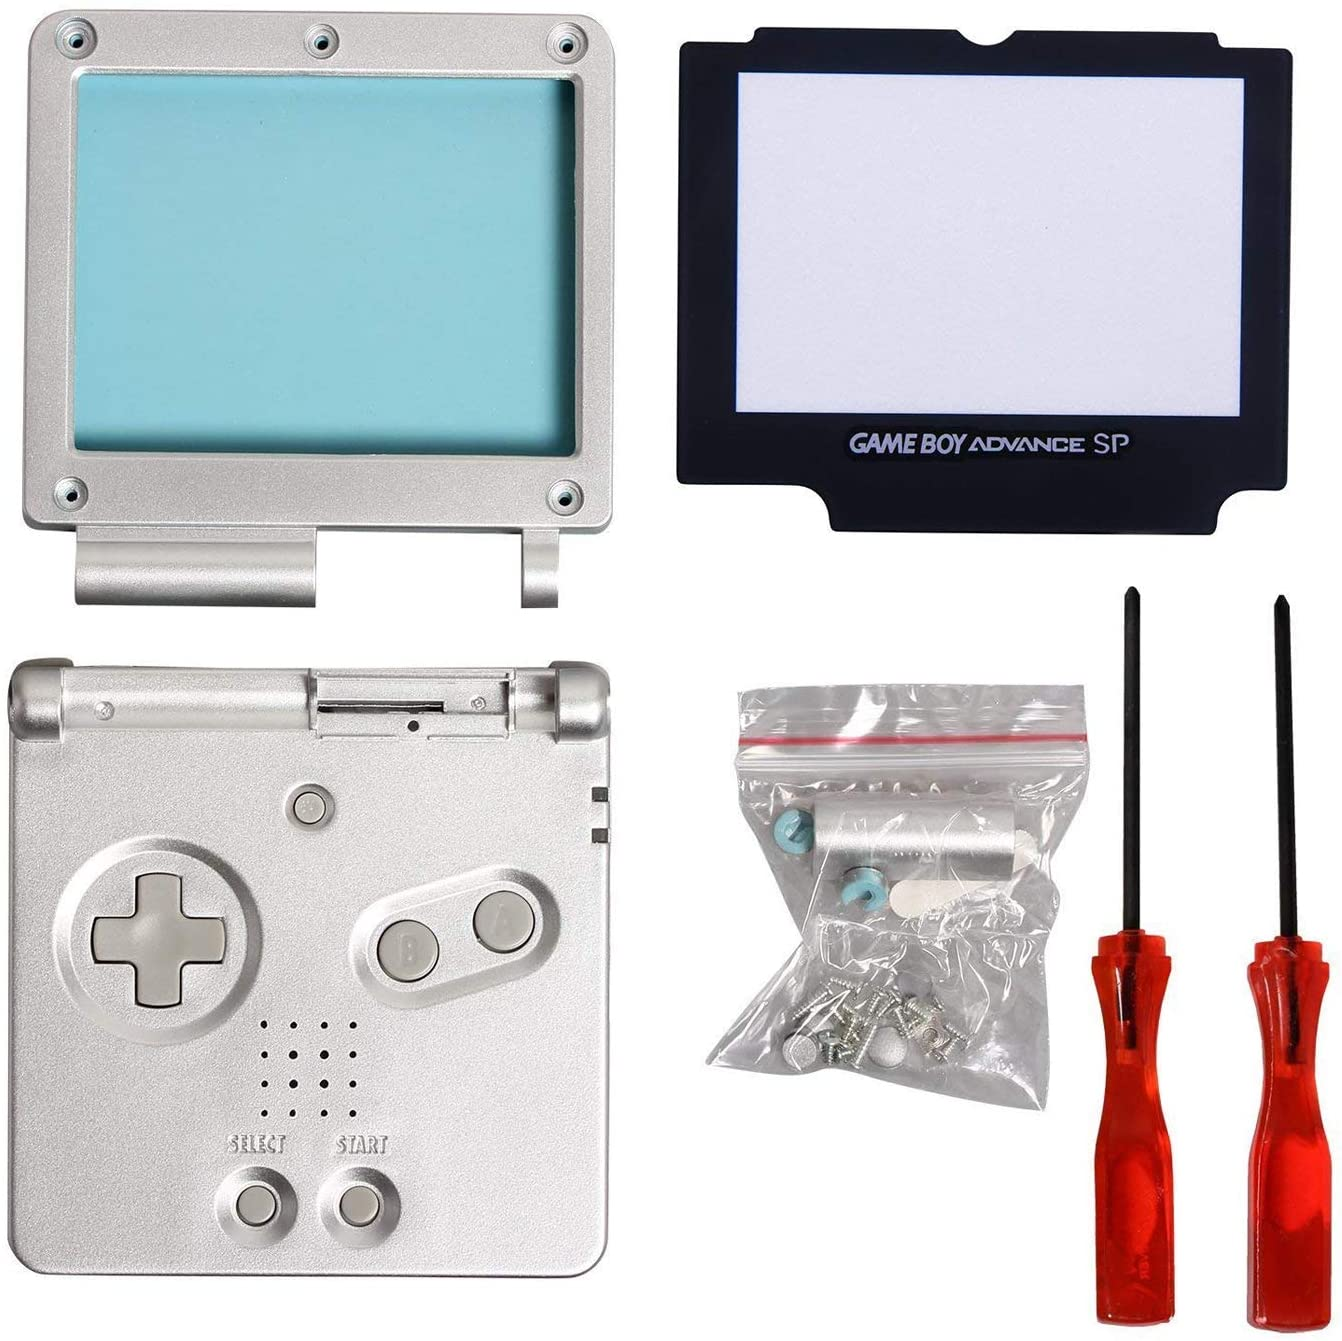 GBA SP Shell, Timorn Full Parts Housing Shell Pack Replacement for GBA SP Gameboy Advance SP (Silver Pack)